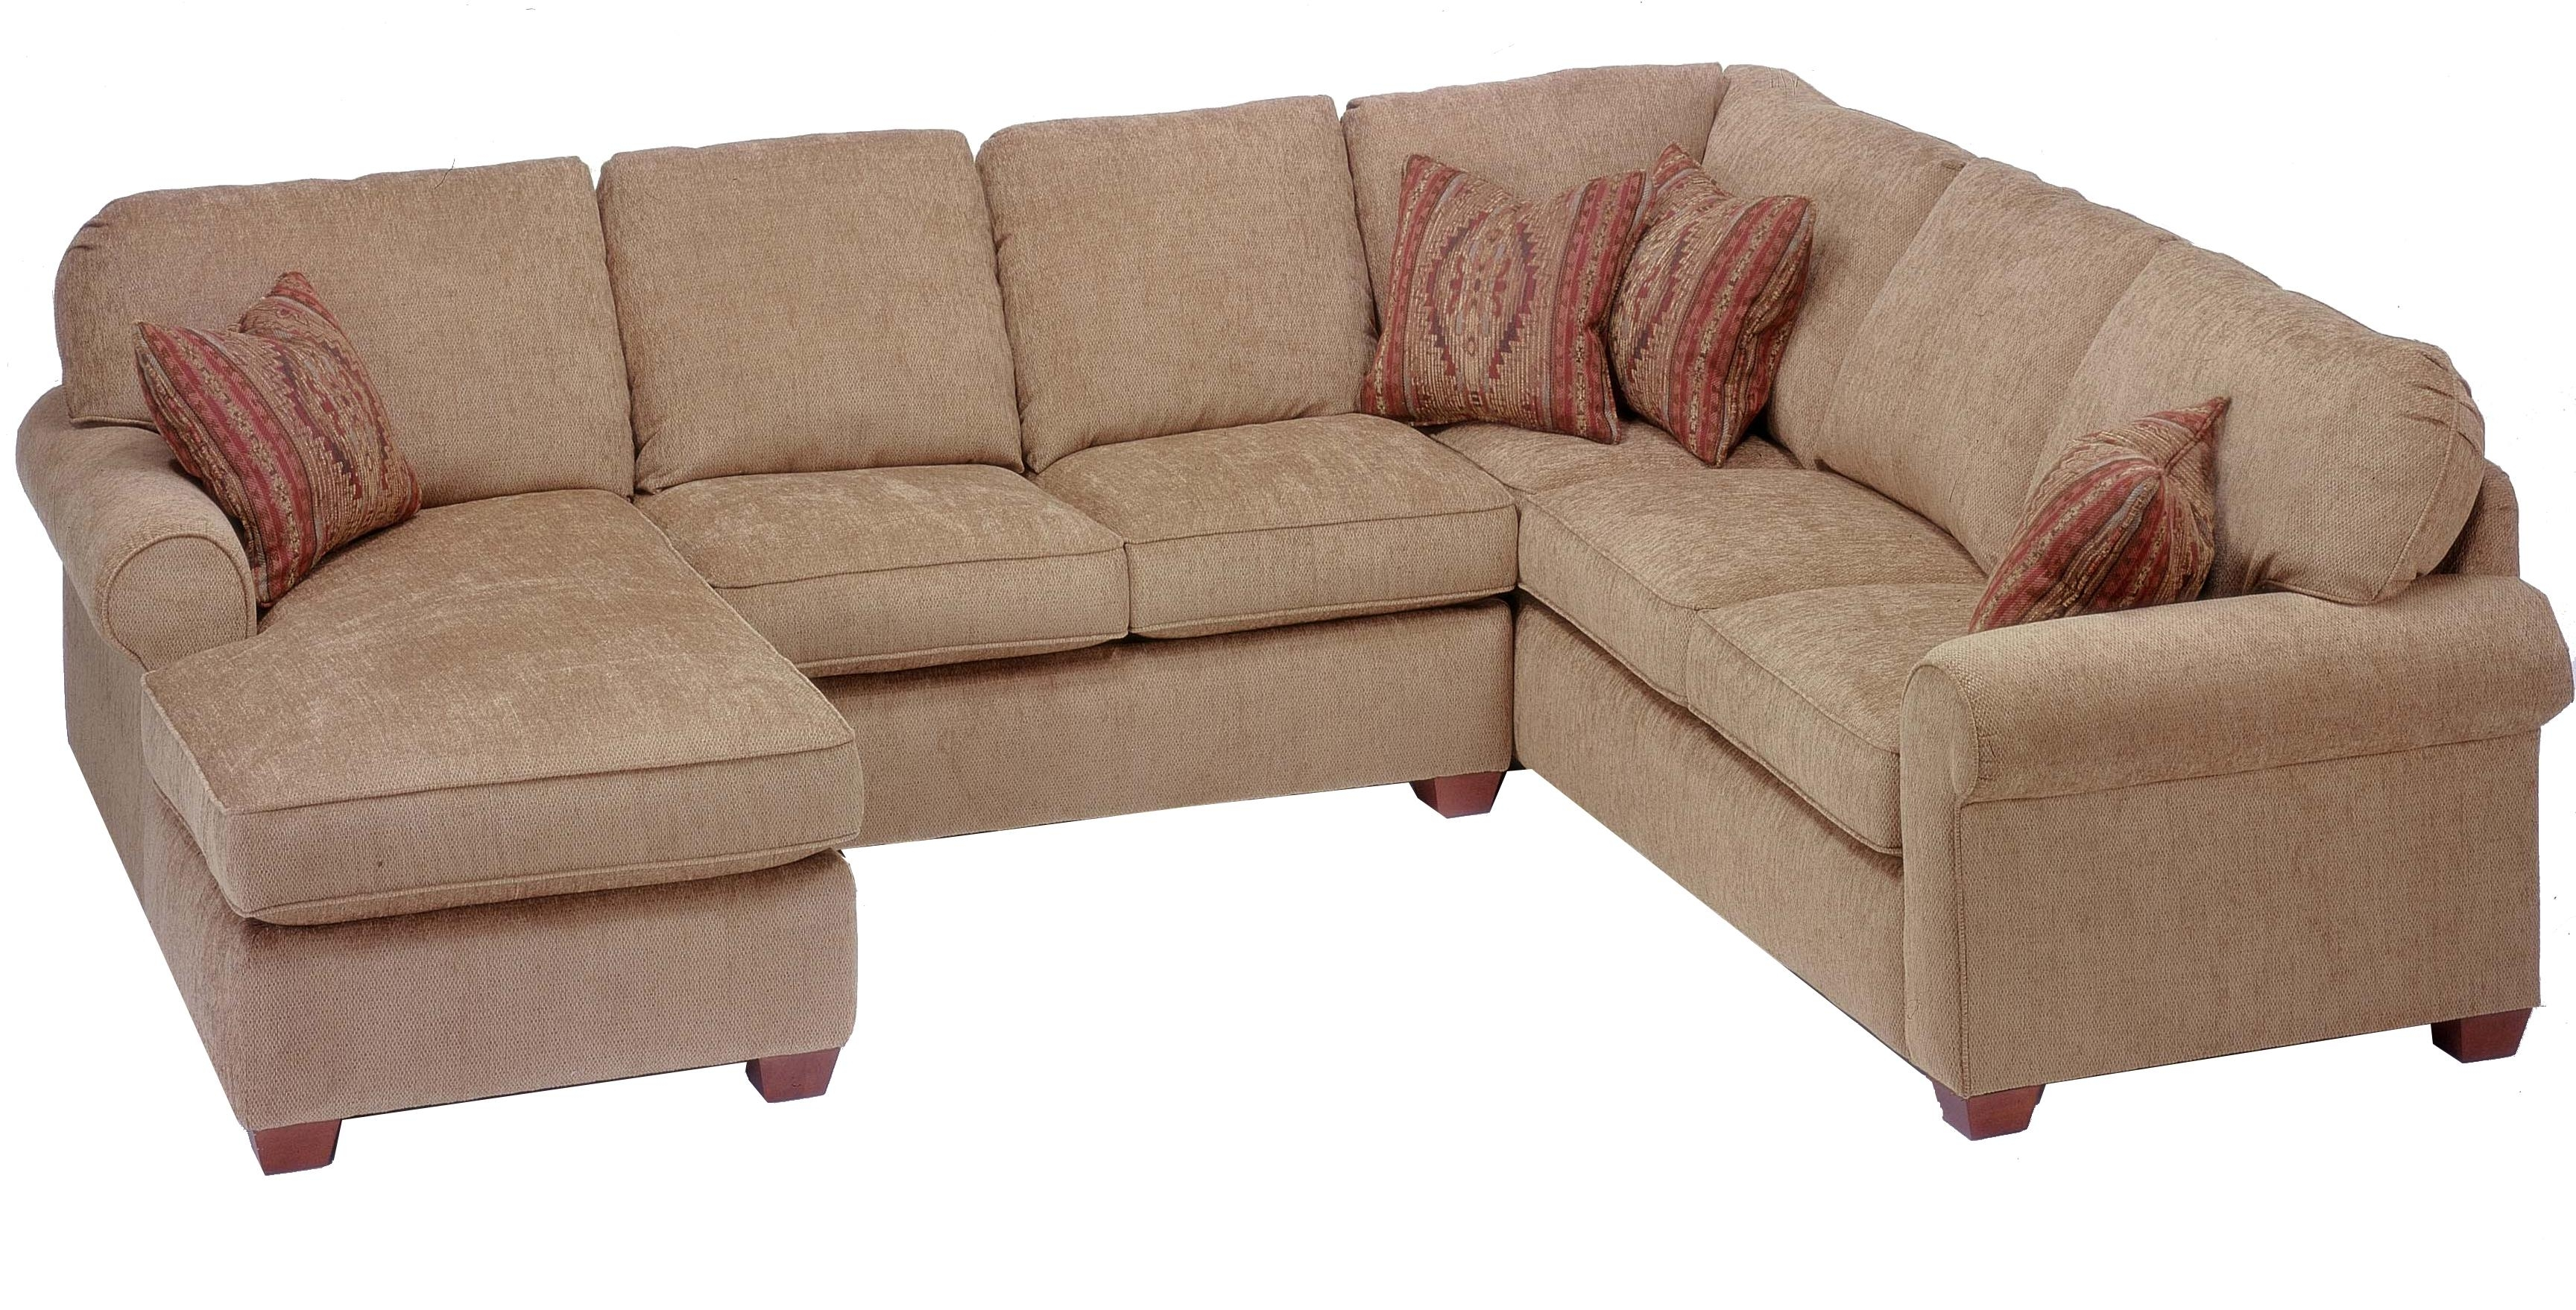 Flexsteel Thornton 3 Piece Sectional With Chaise – Ahfa – Sofa With Regard To Norfolk Chocolate 3 Piece Sectionals With Raf Chaise (Image 13 of 25)